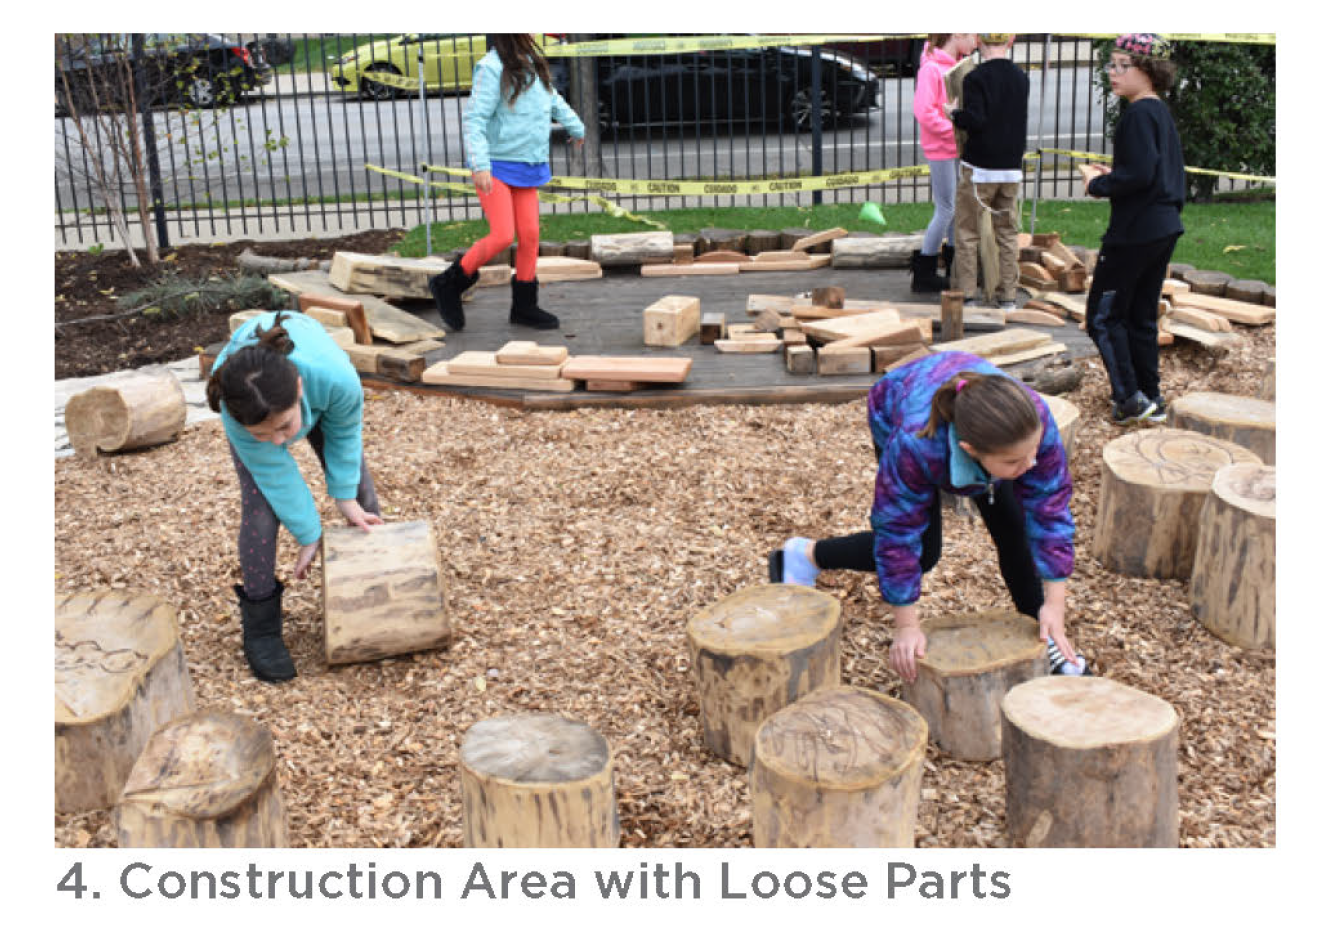 Construction Area with Loose Parts